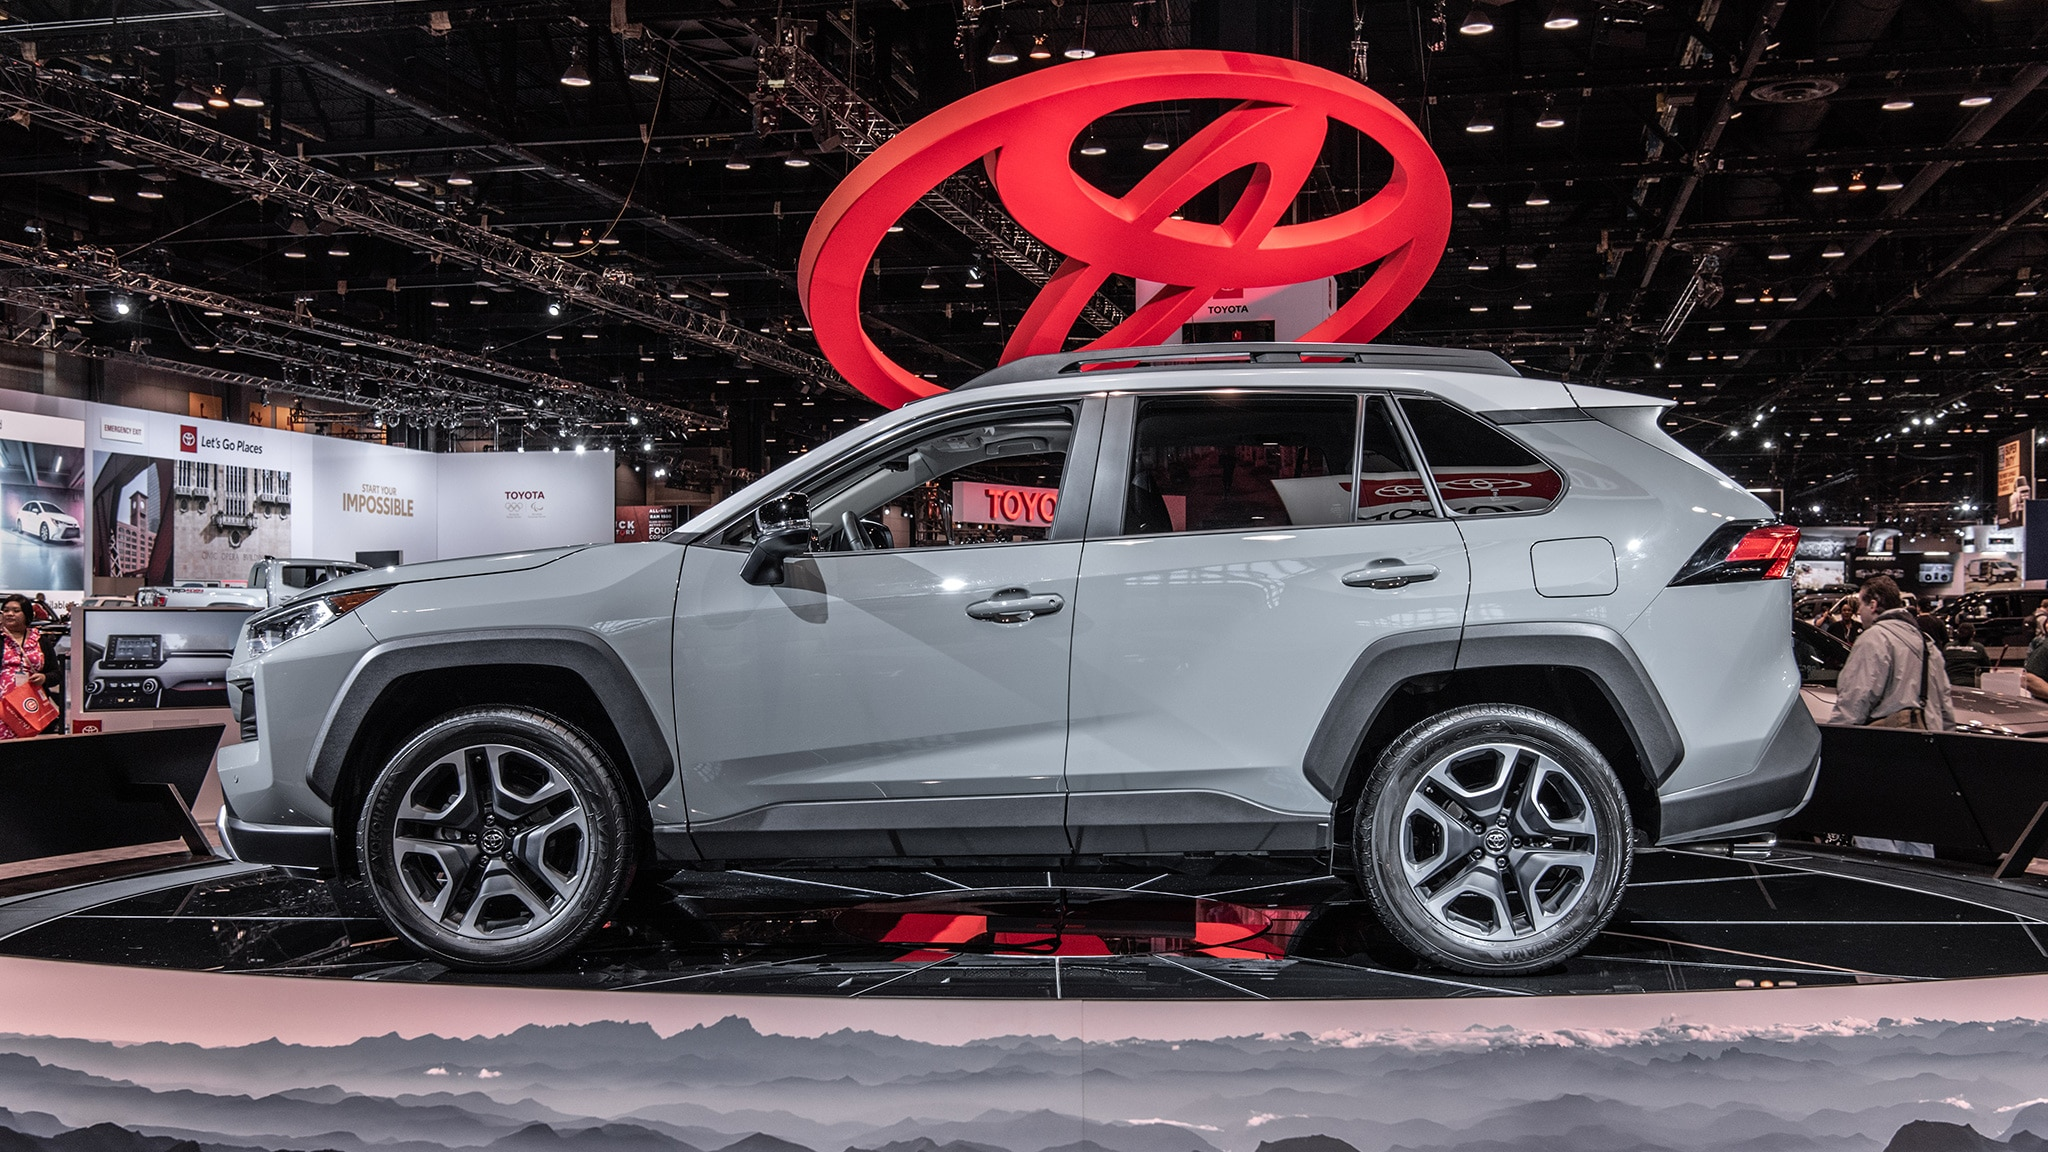 Toyota Sequoia TRD 2020 Launches in Chicago